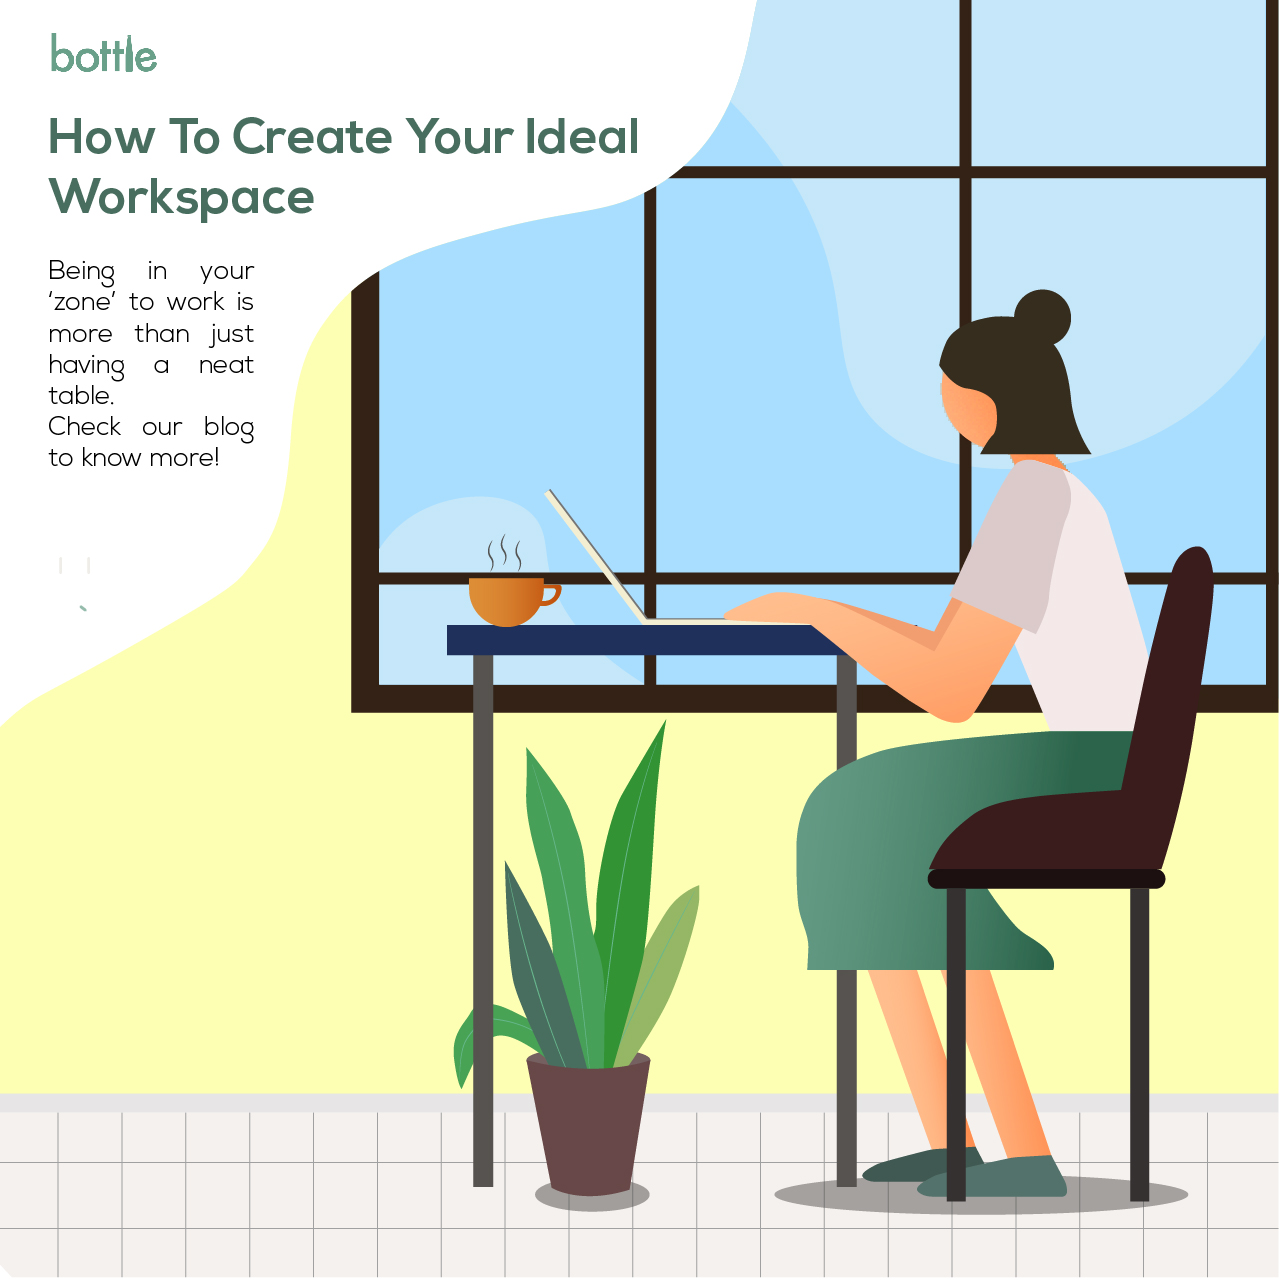 How To Create Your Ideal Workspace